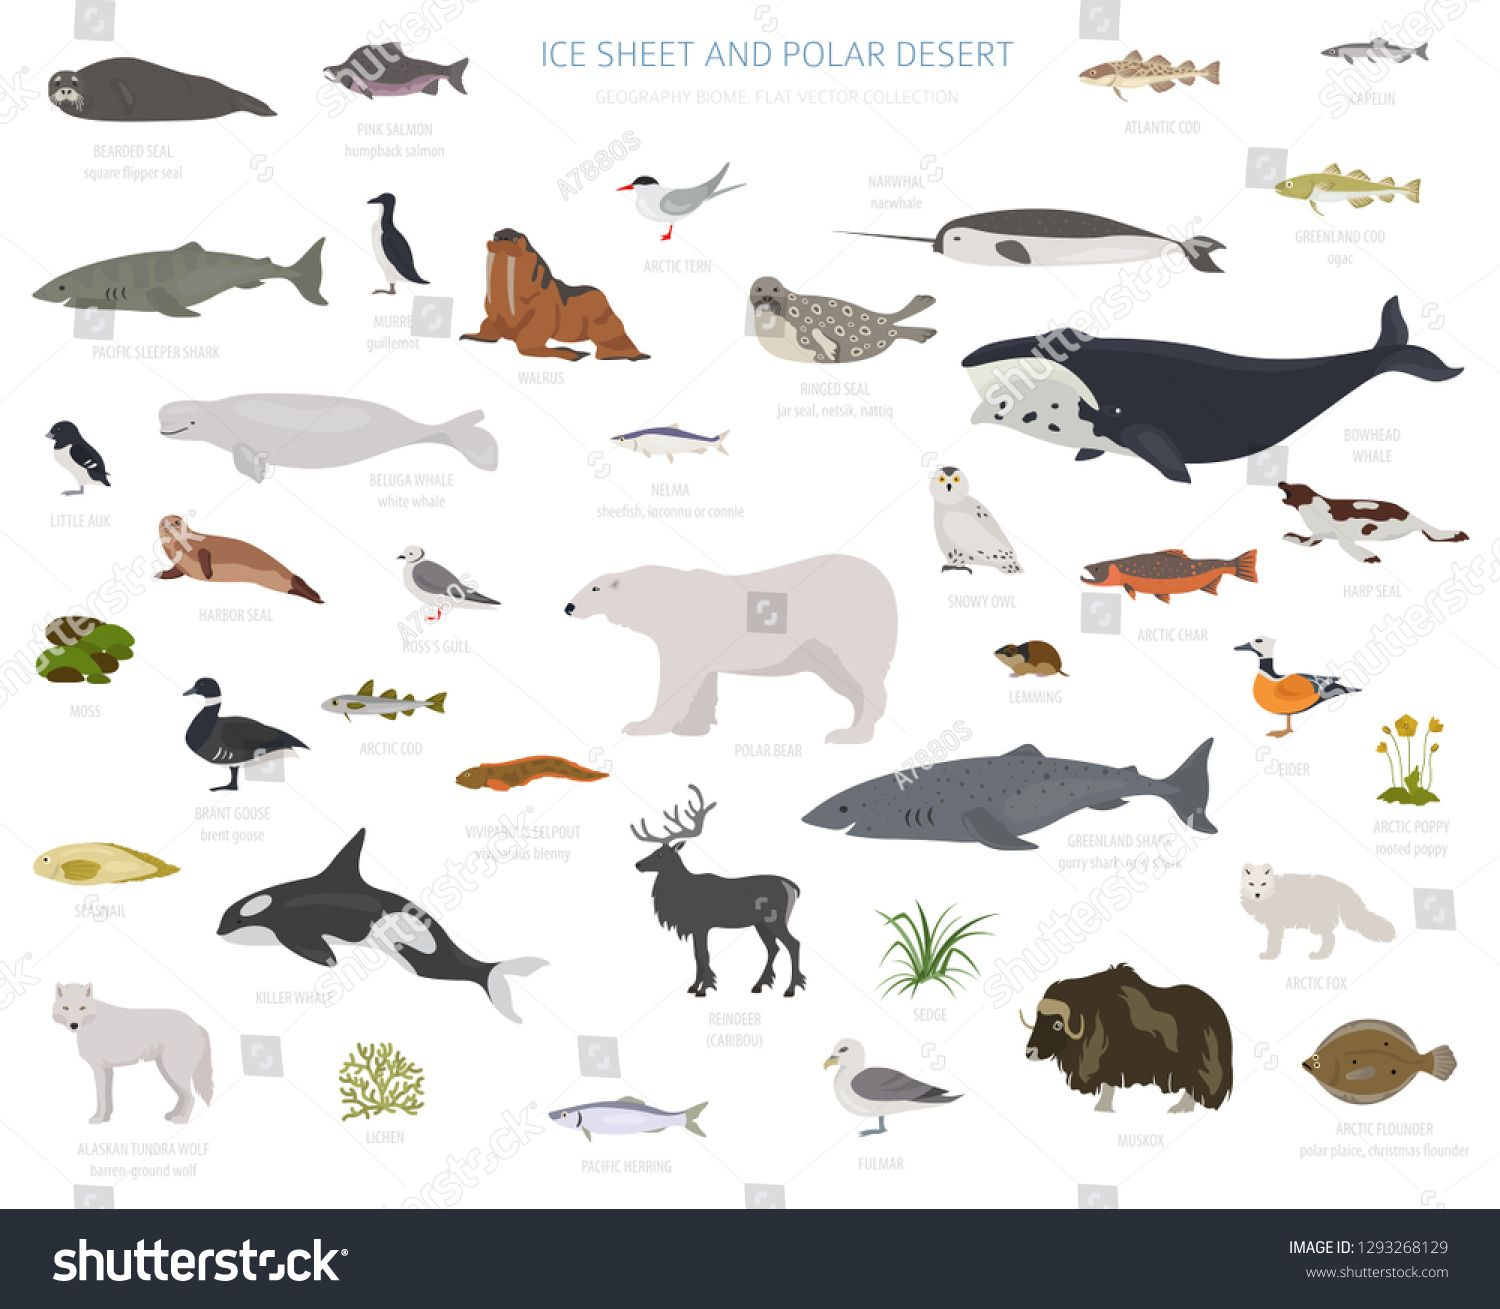 Ice Sheet And Polar Desert Biome Terrestrial Ecosystem World Map Arctic Animals Birds Fish And Plants Infographic Des In 2020 Arctic Animals Animals Images Animals